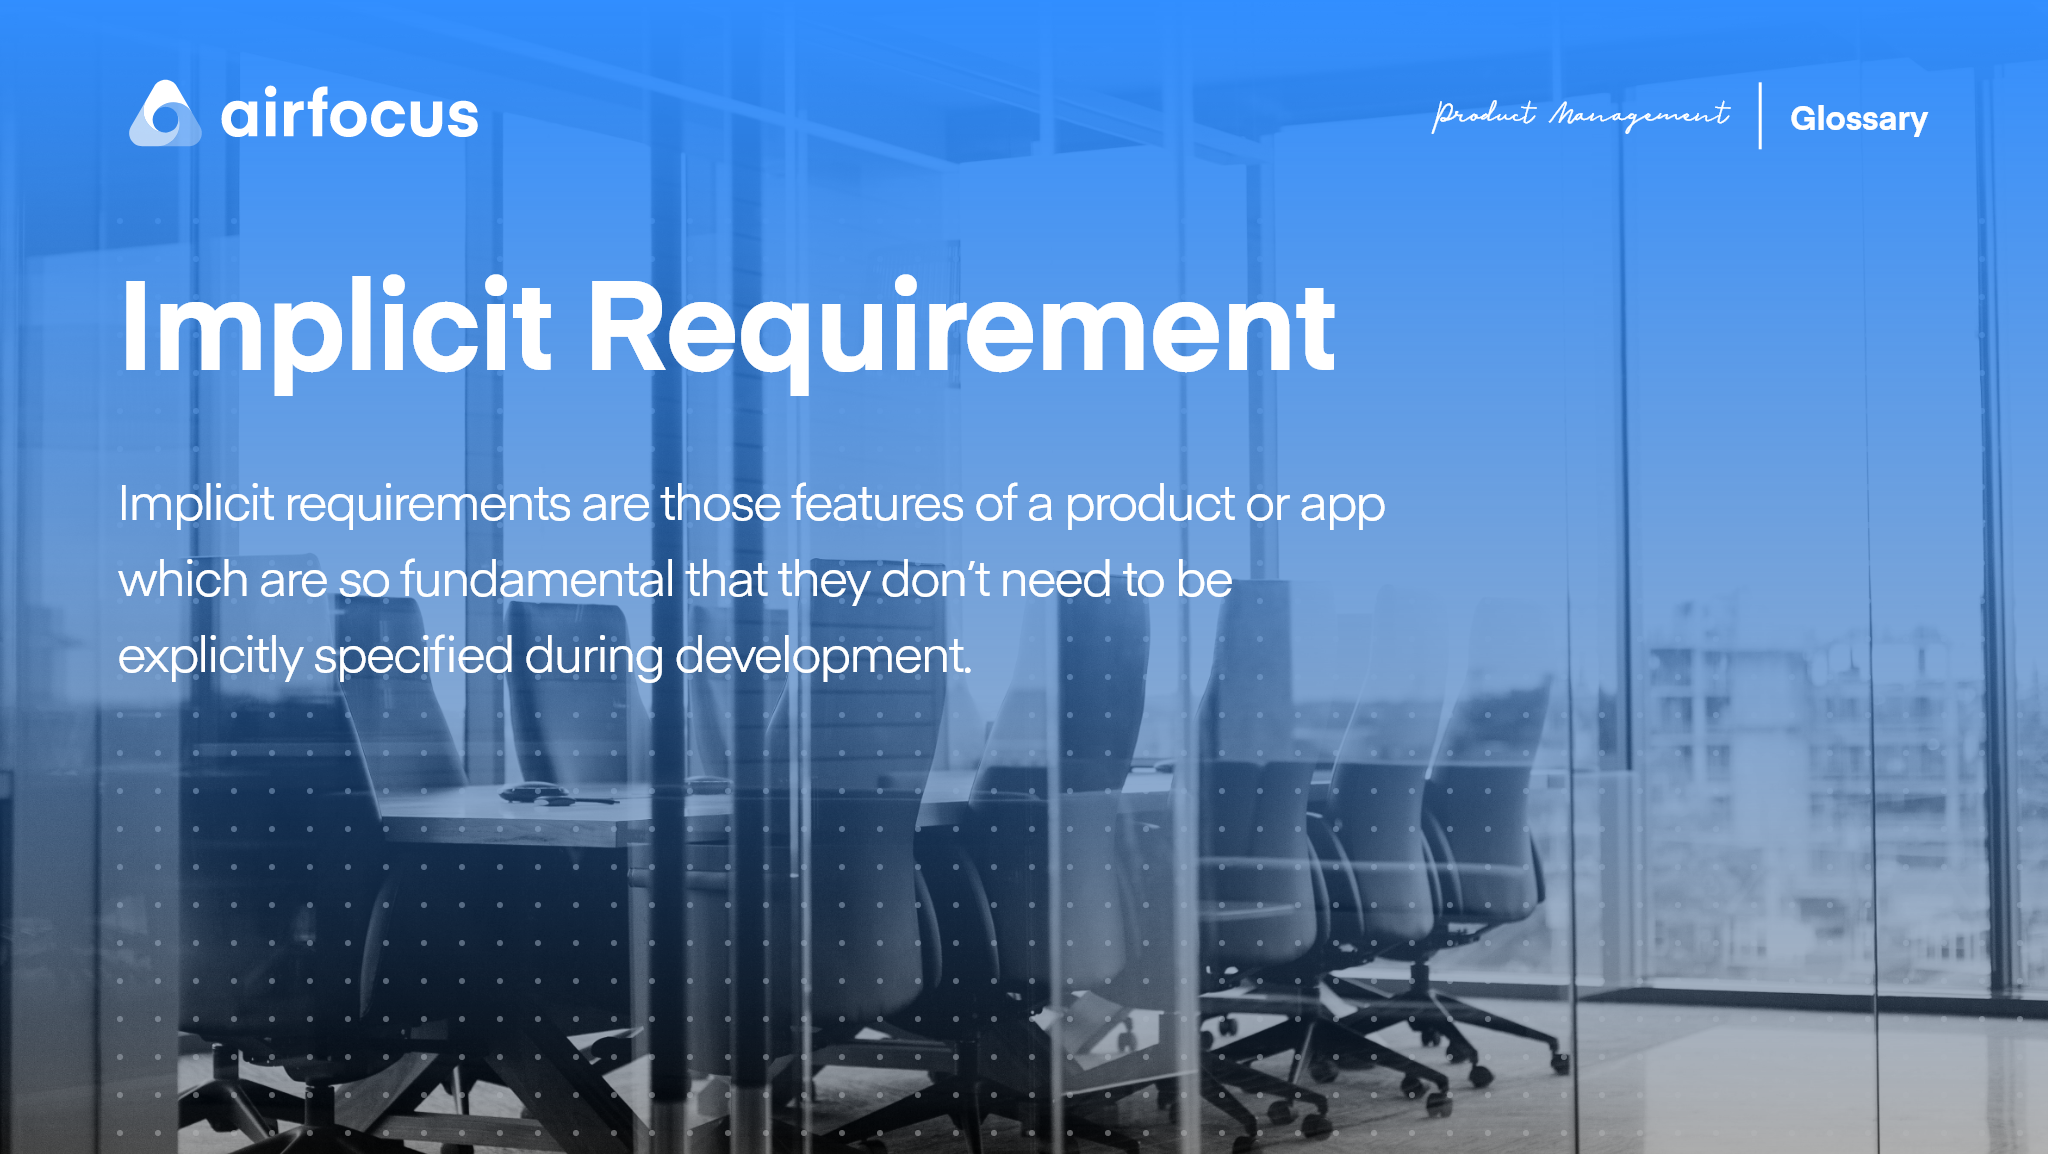 What Are Implicit Requirements?